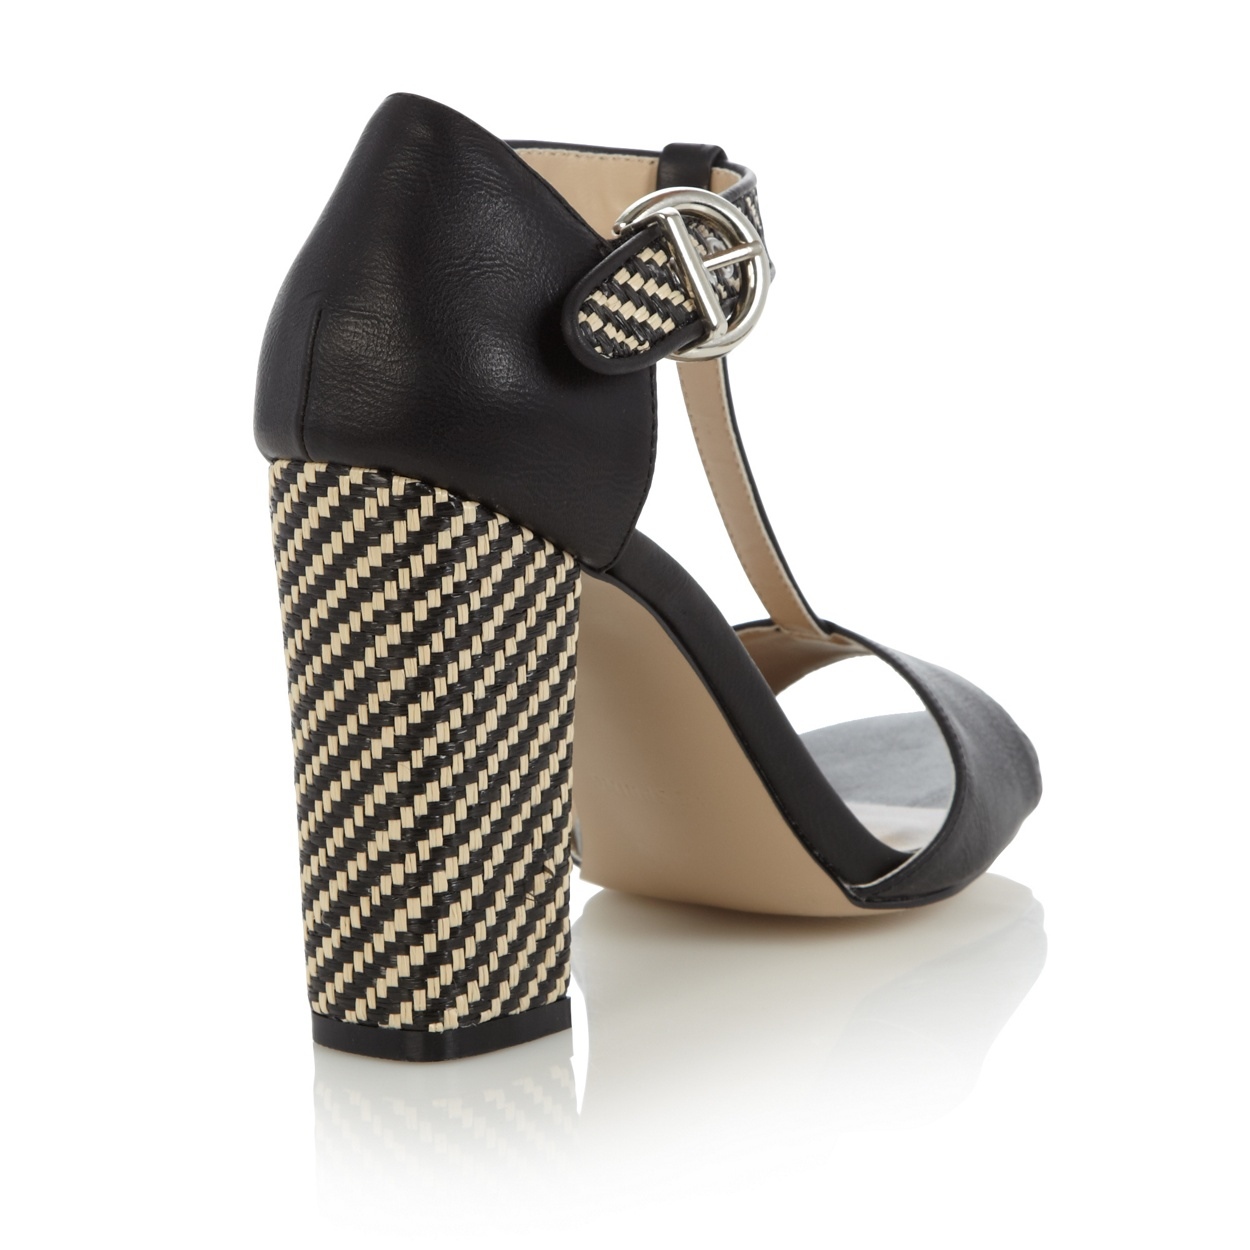 Black sandals debenhams - Call It Spring Black Ybaevia Woven Block Heeled Sandals Was 45 00 Now 22 50 Now 13 50 70 Off Save A Total Of 31 50